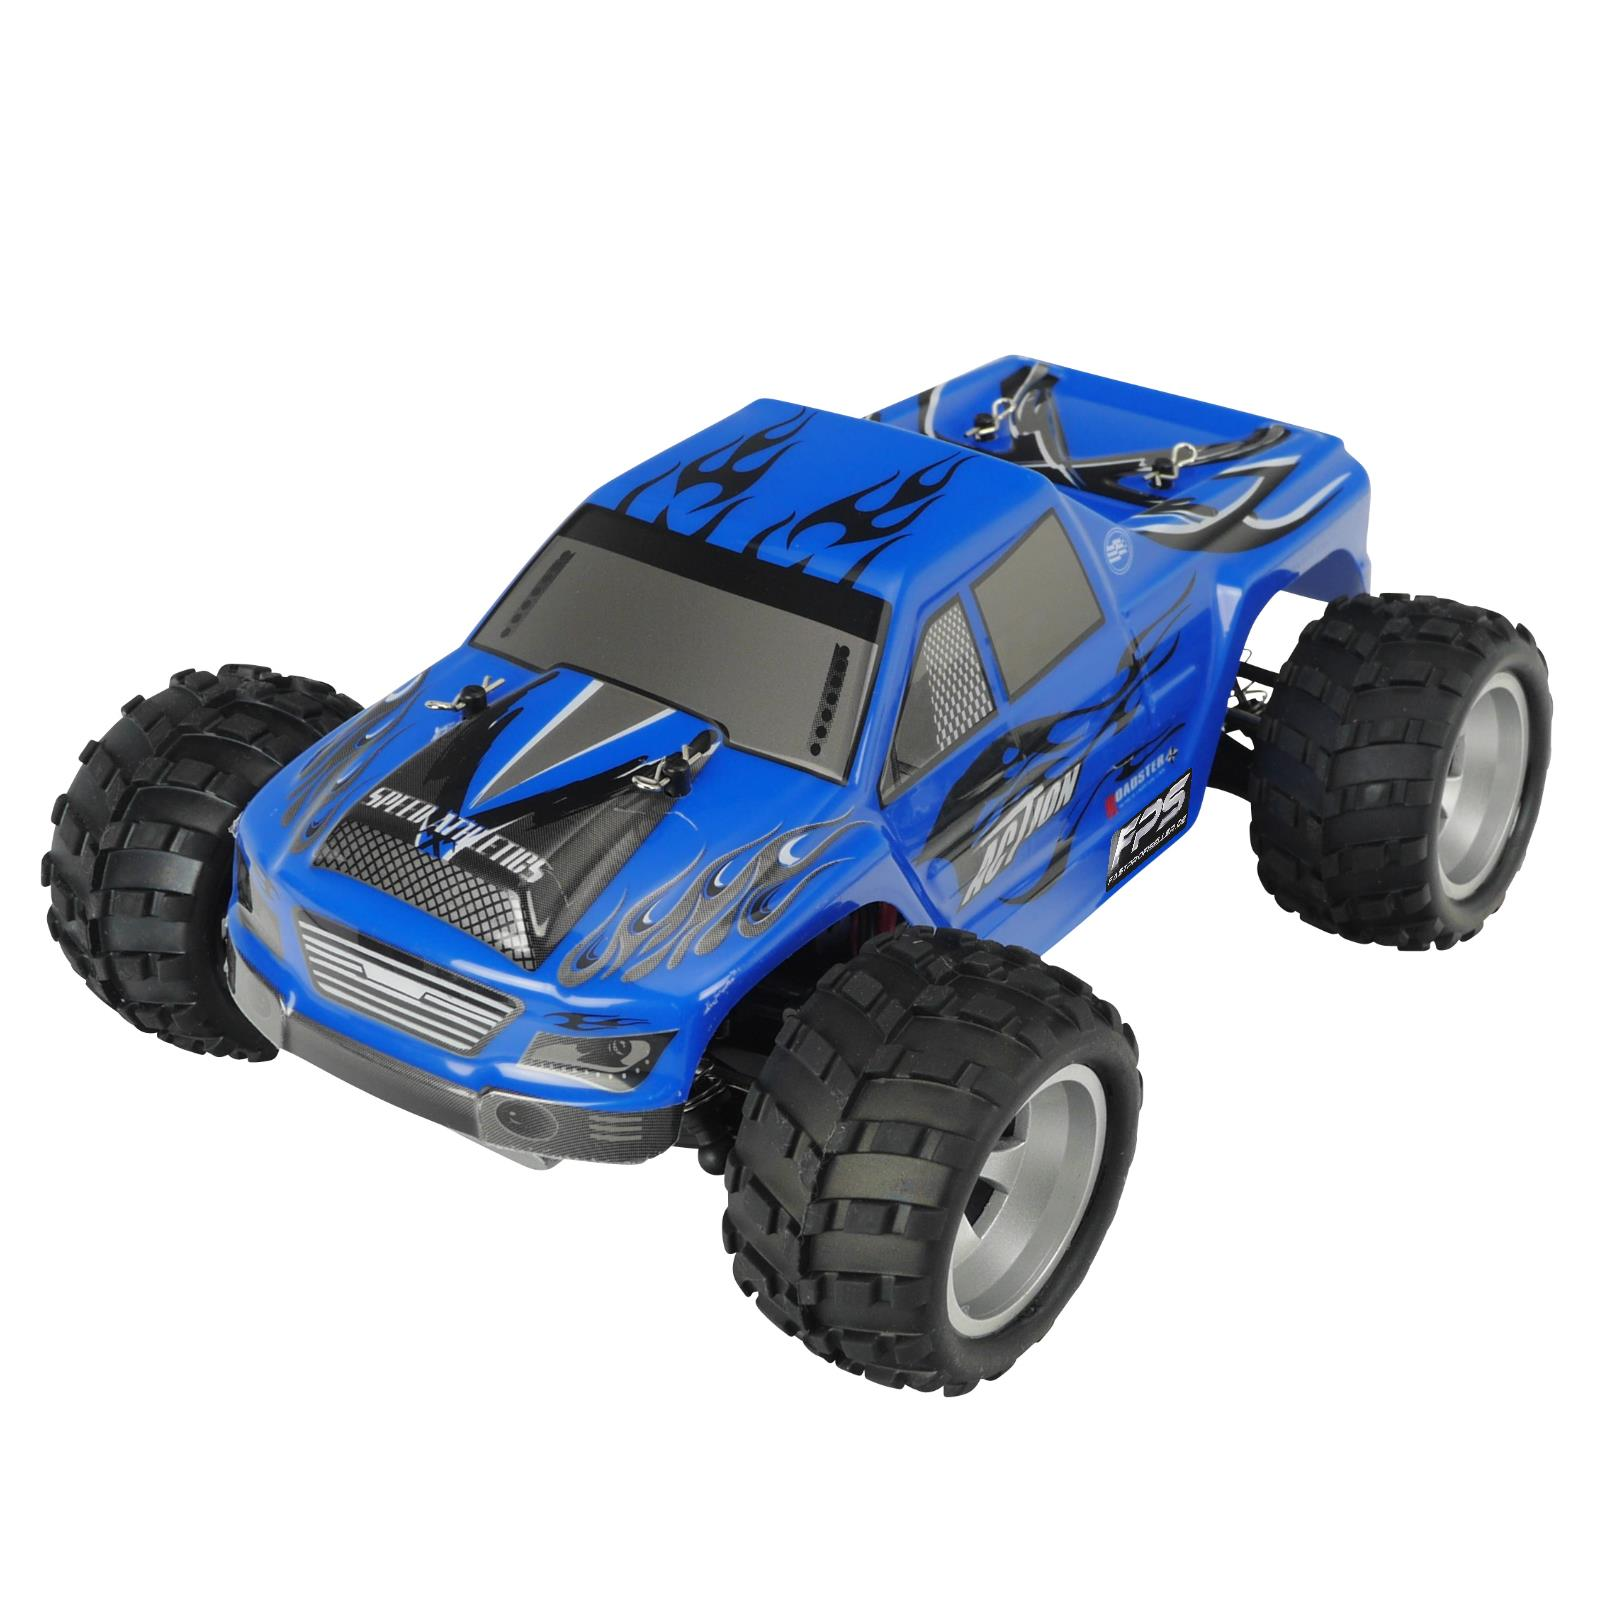 Rayline Funrace 01 FR01 RC Monstertruck Blau